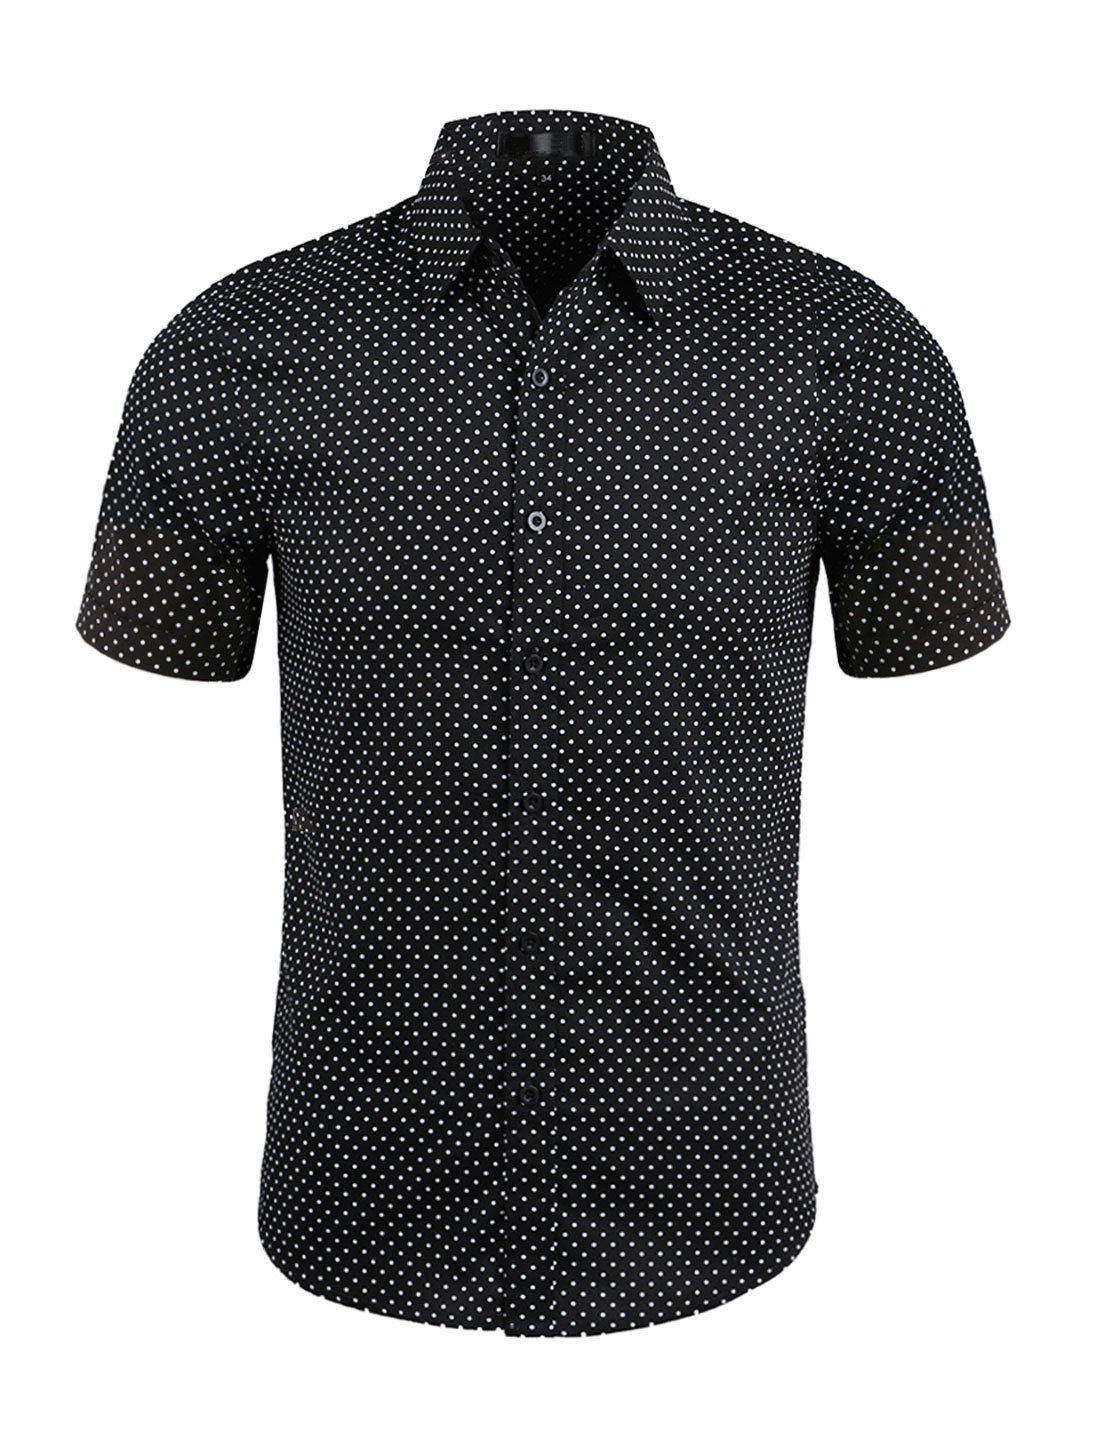 Men Dots Point Collar Short Sleeves Button Up Shirt Black L